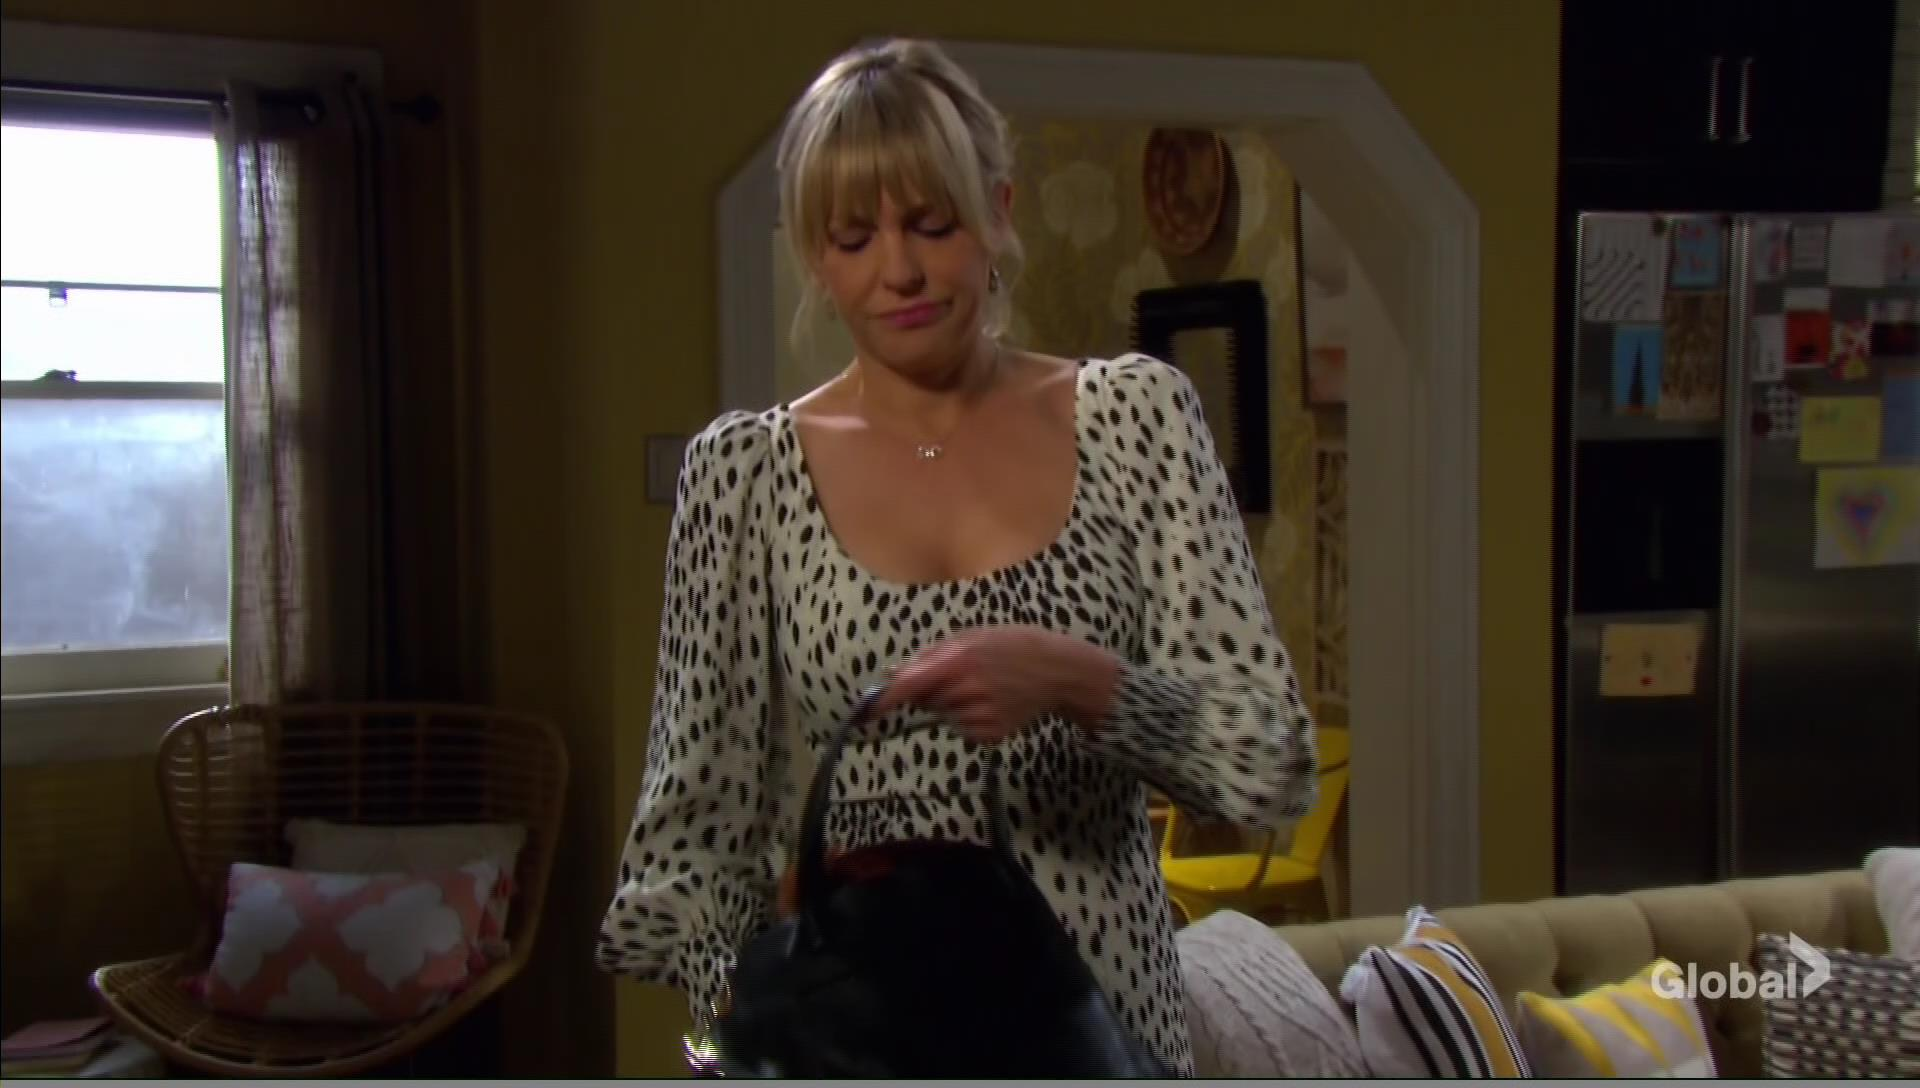 nicole with bear days of our lives